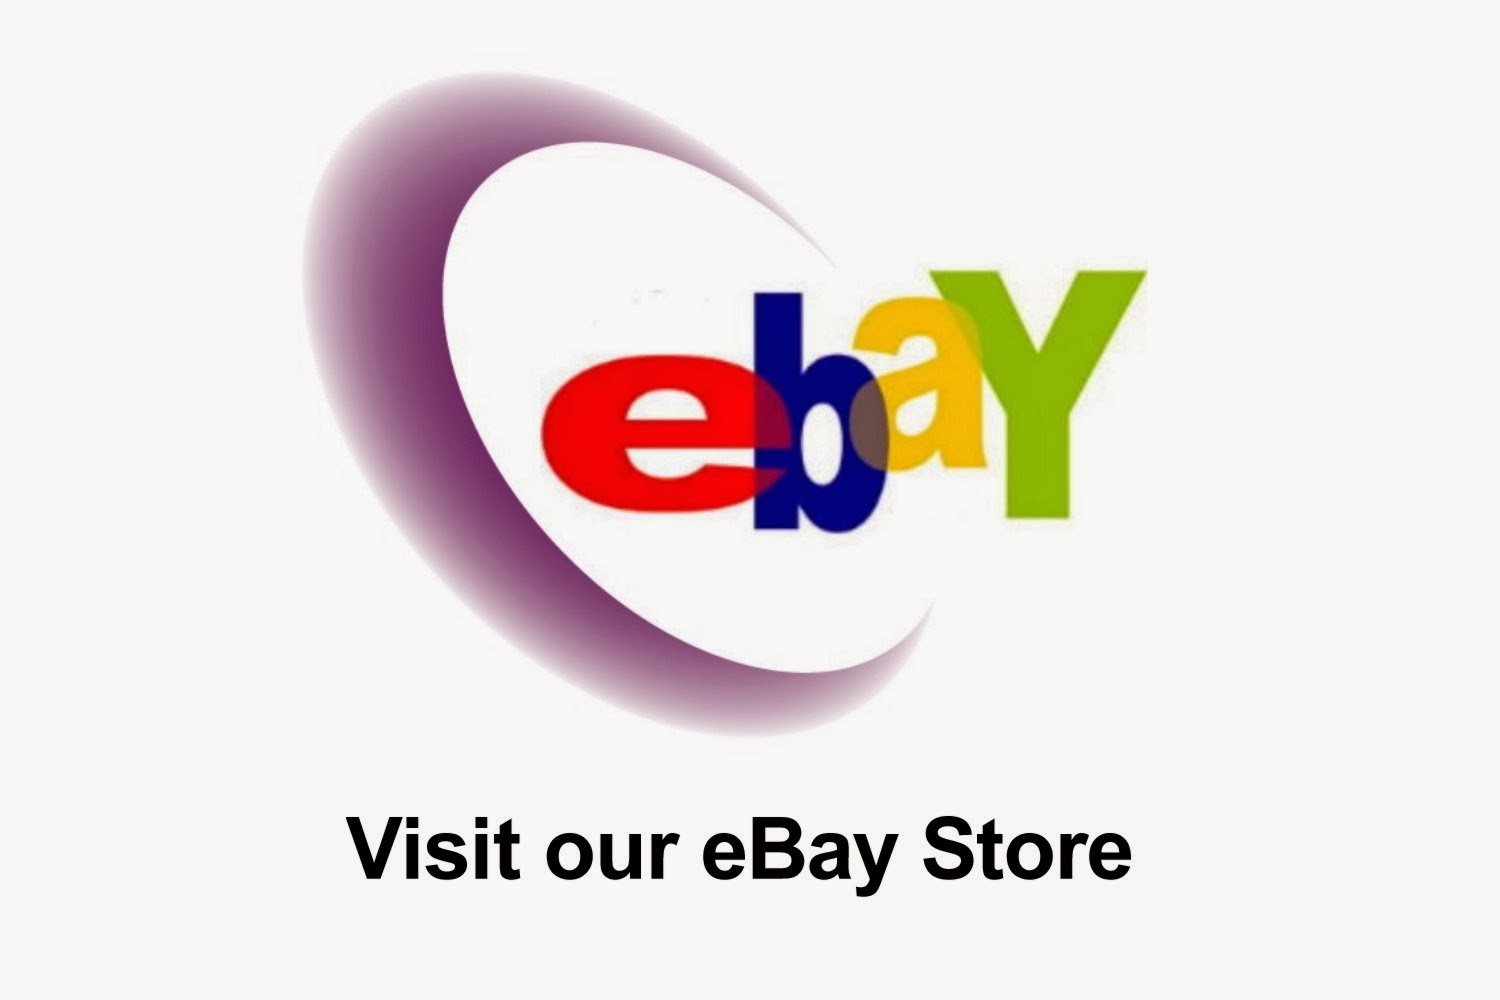 http://couponcodeforebay.blogspot.com - How to get an eBay Discount Coupon